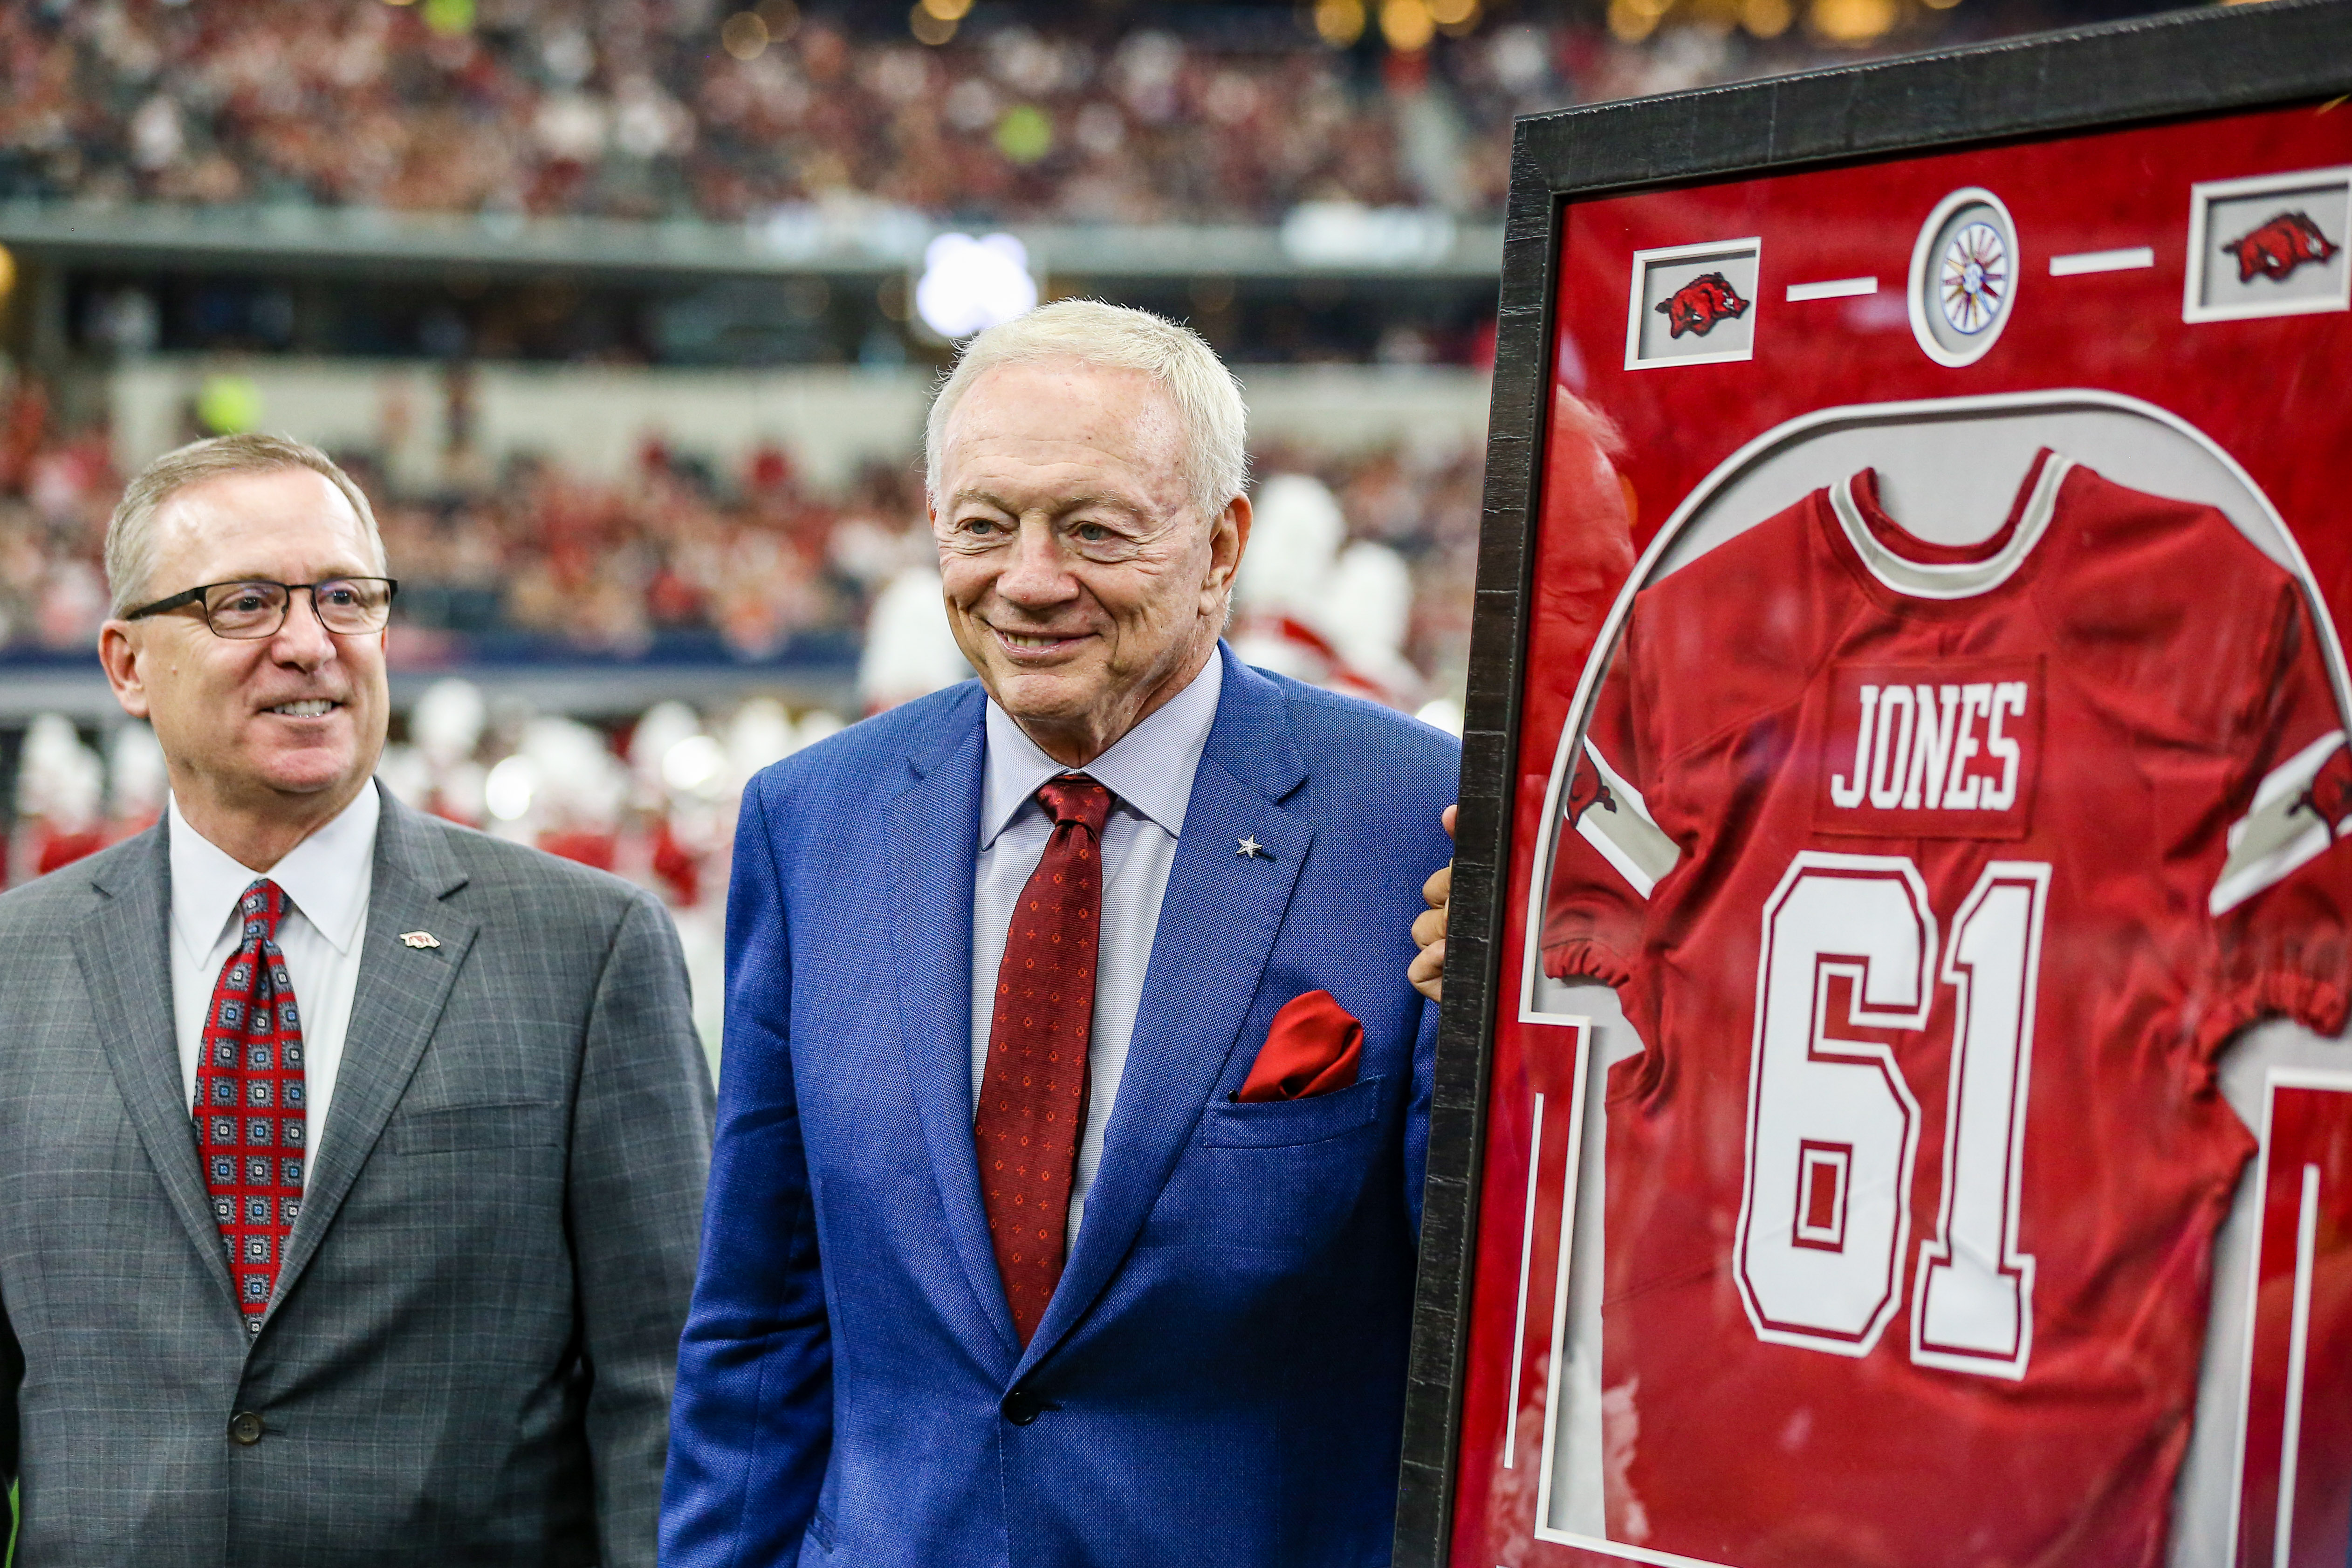 Dallas Cowboys owner Jerry Jones gets a Arkansas Razorbacks Jersey for the 1961 Arkansas National Championship team